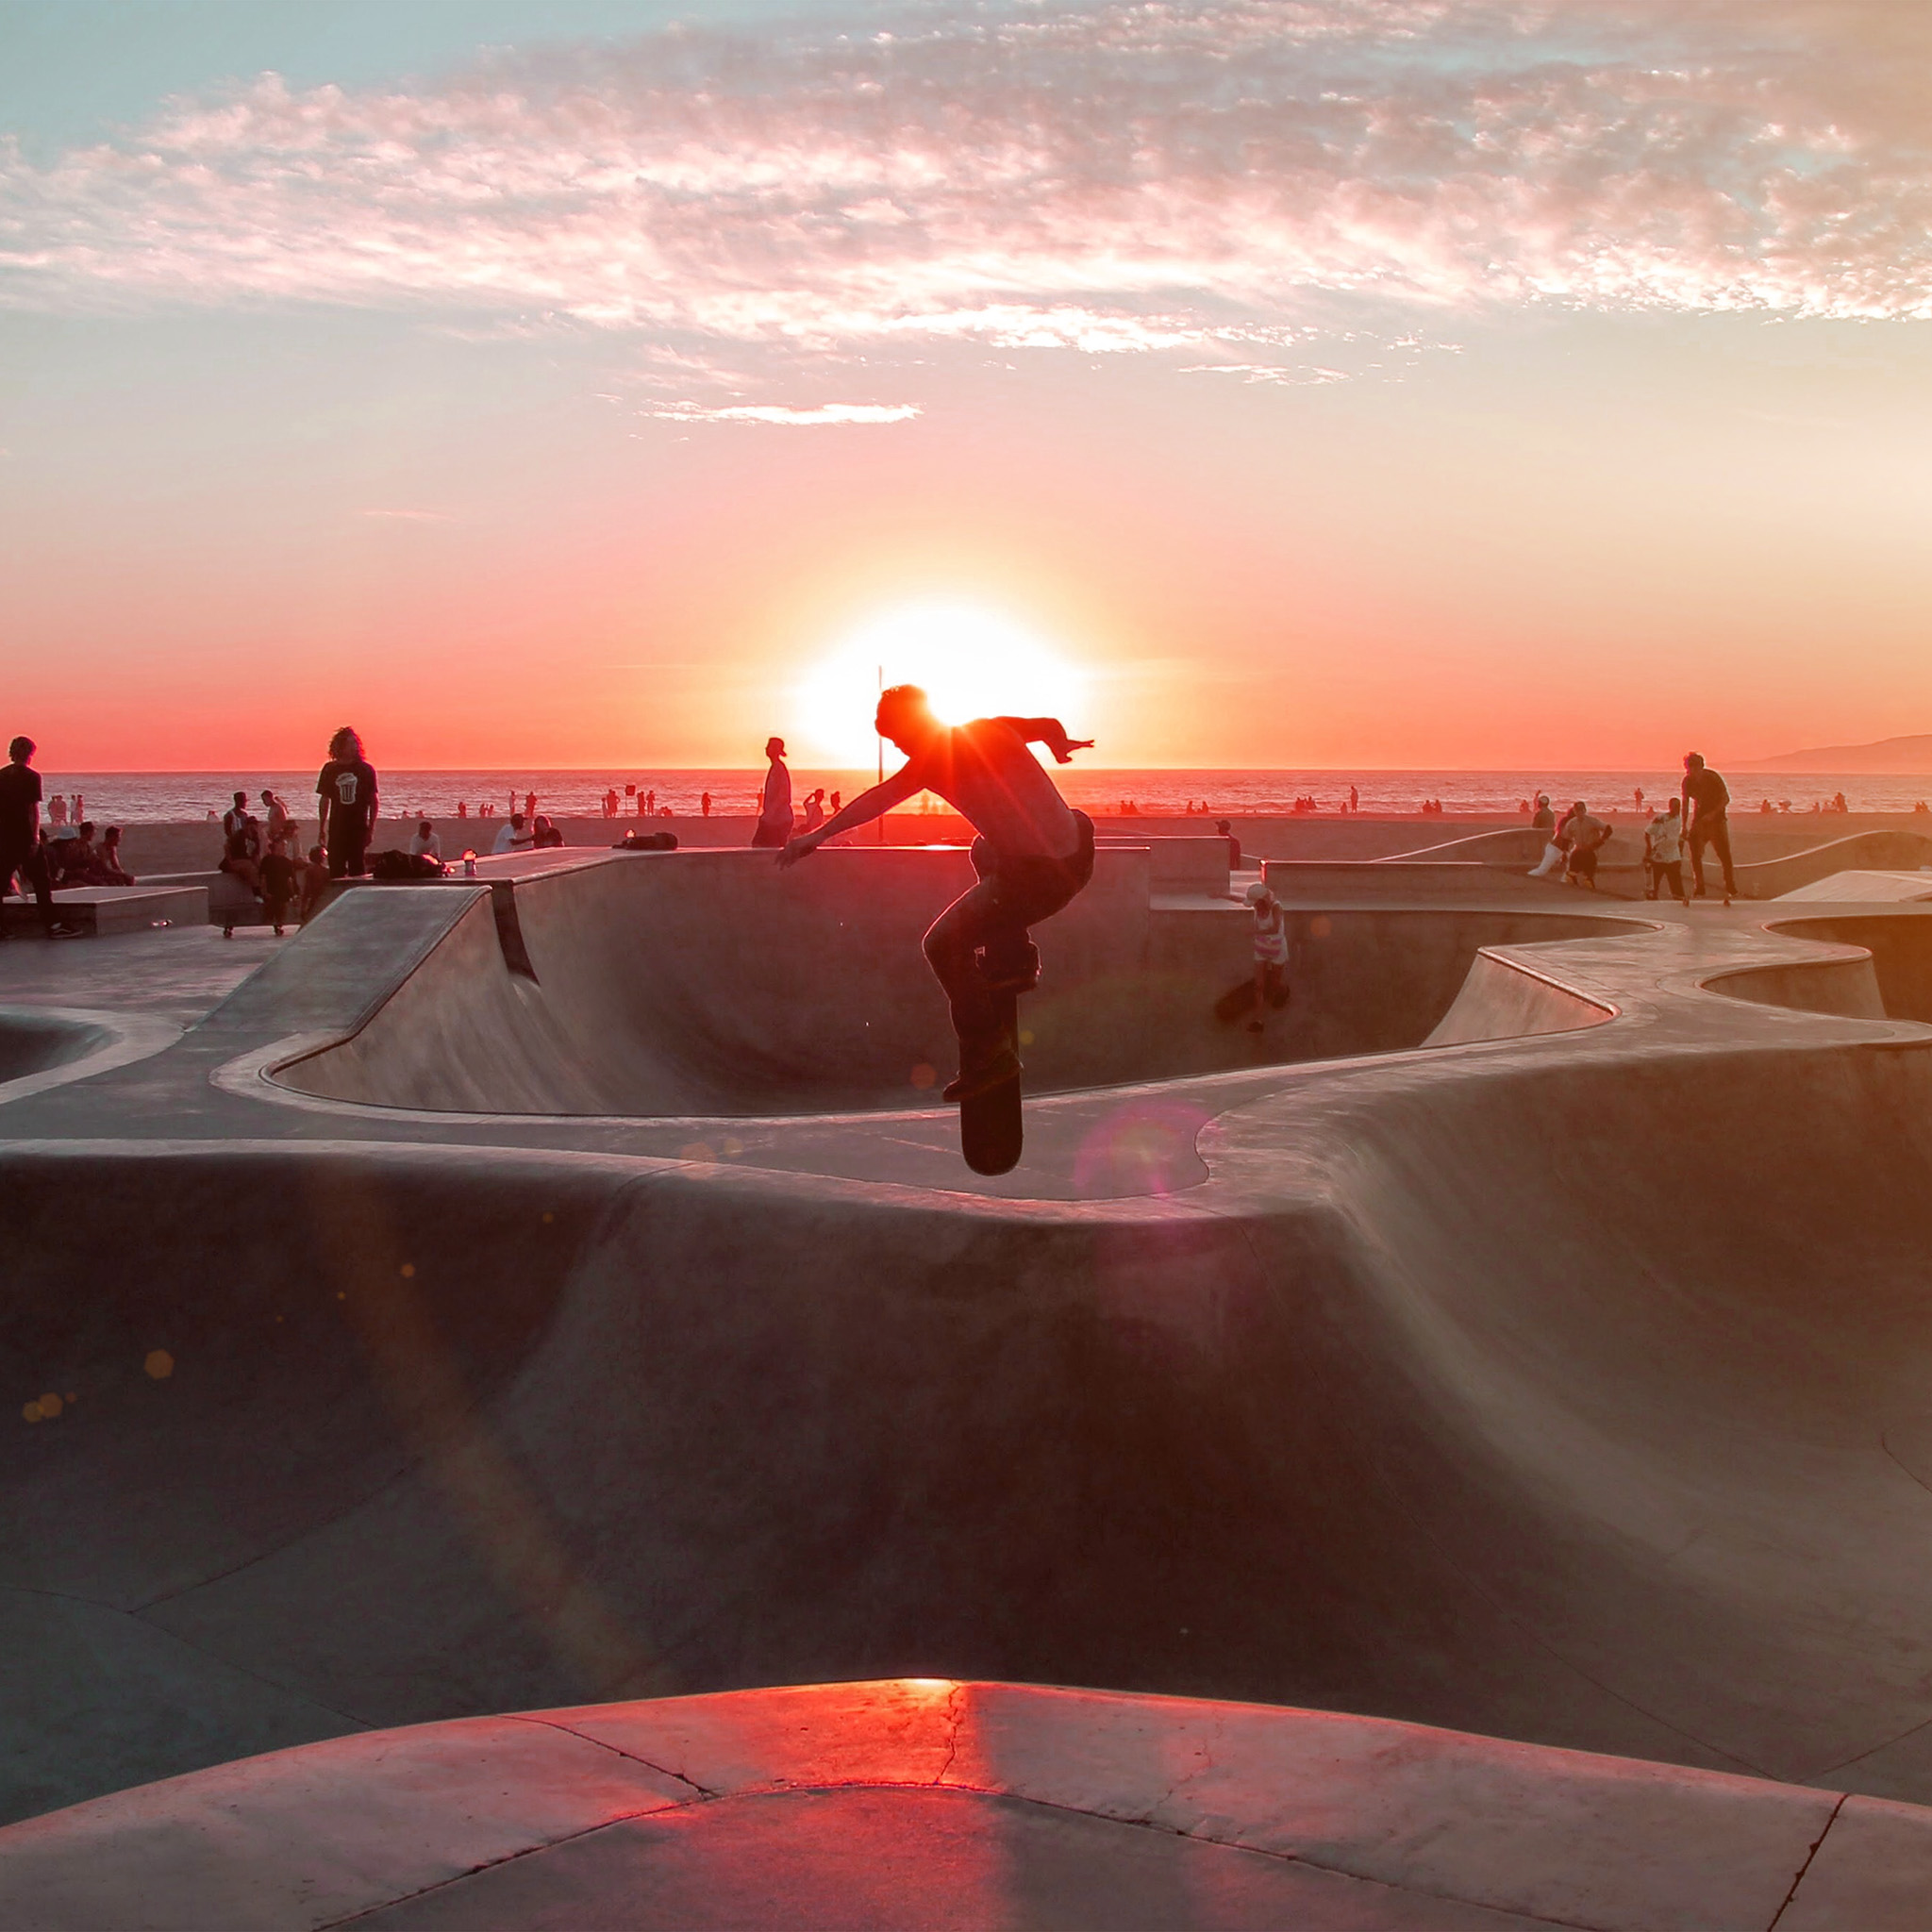 Nb19-skateboard-extreme-sports-summer-flare-red-wallpaper